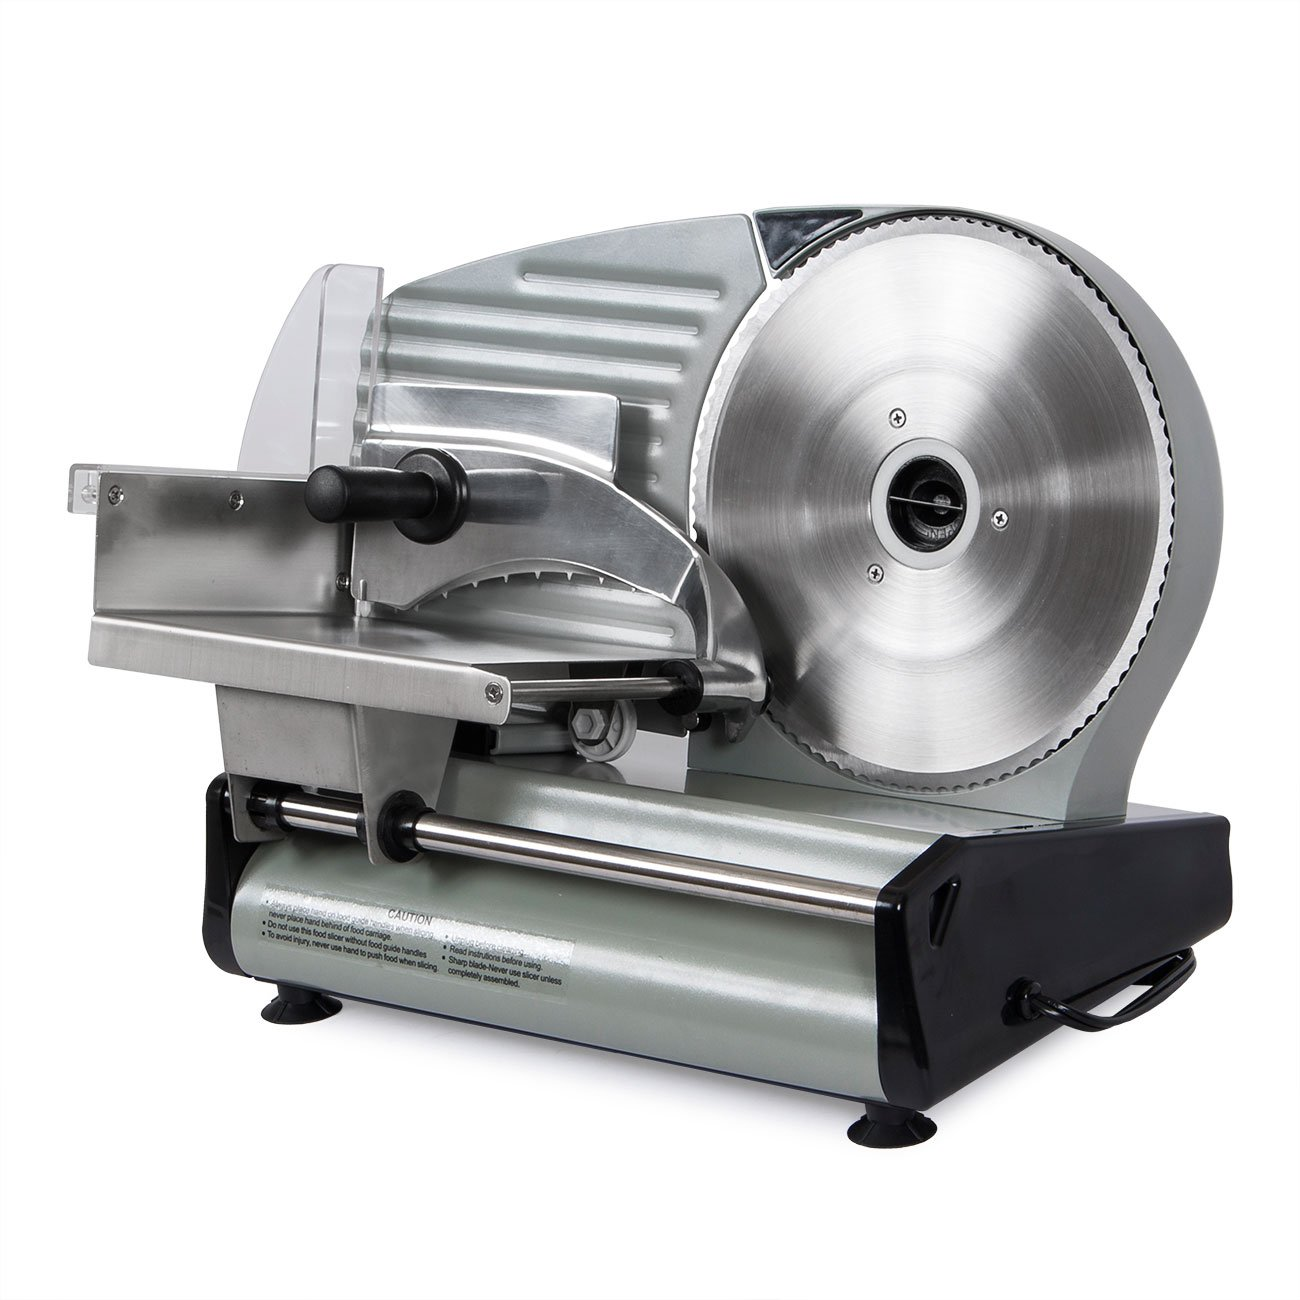 Electric Commercial Meat Slicer, Machine Food Cutting, Deli Slice Veggie Cutter Kitchen 8.7'' Blade 180W by Snow Shop Everything (Image #1)